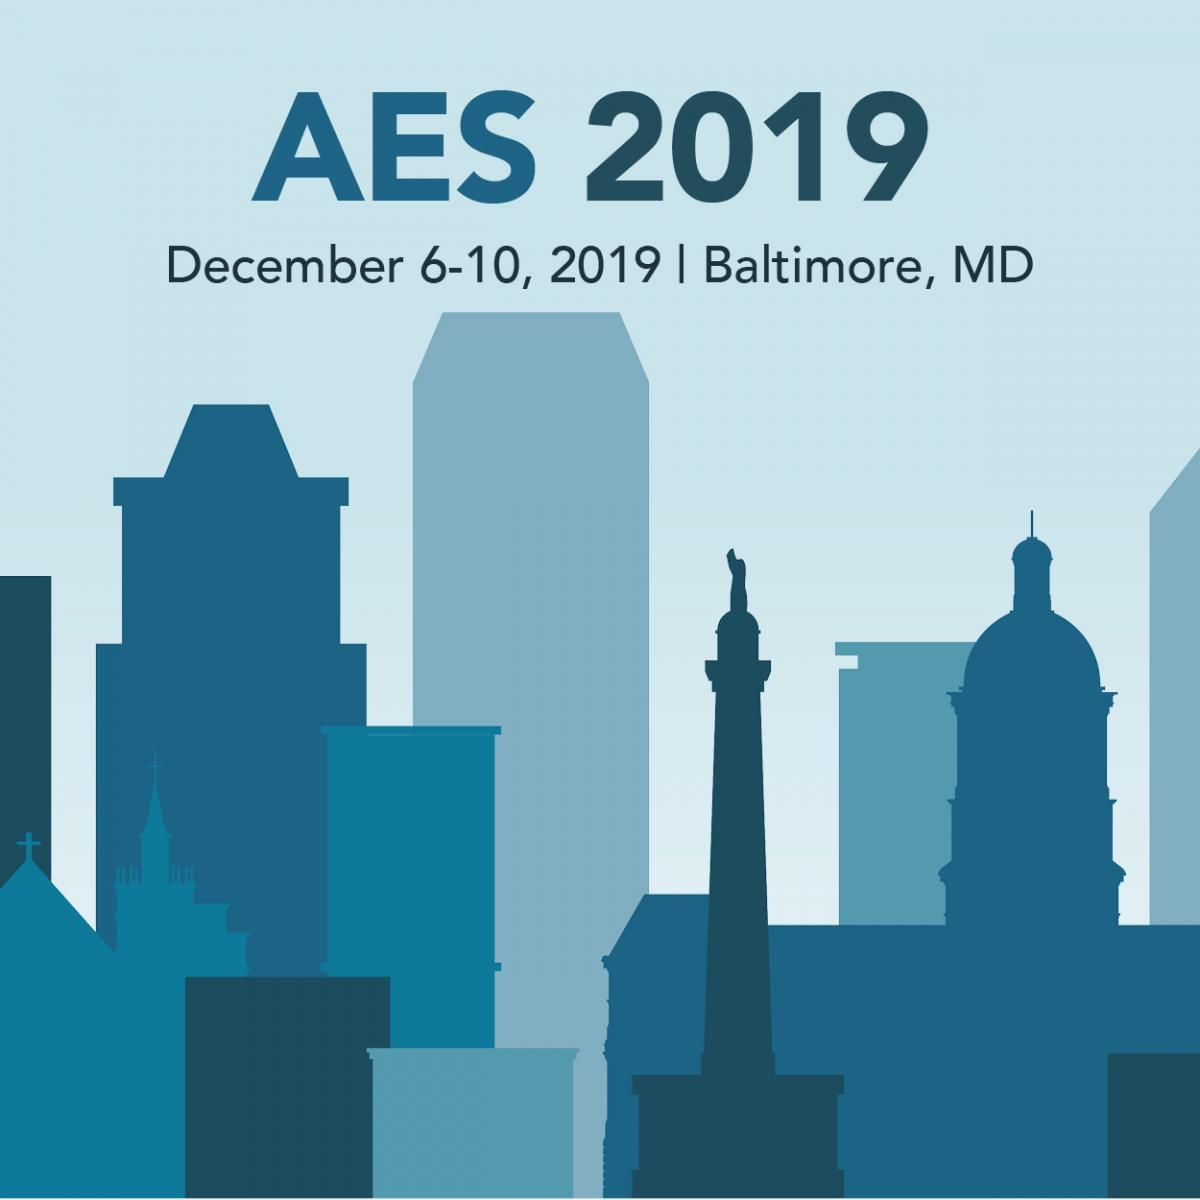 2019 AES Annual Meeting